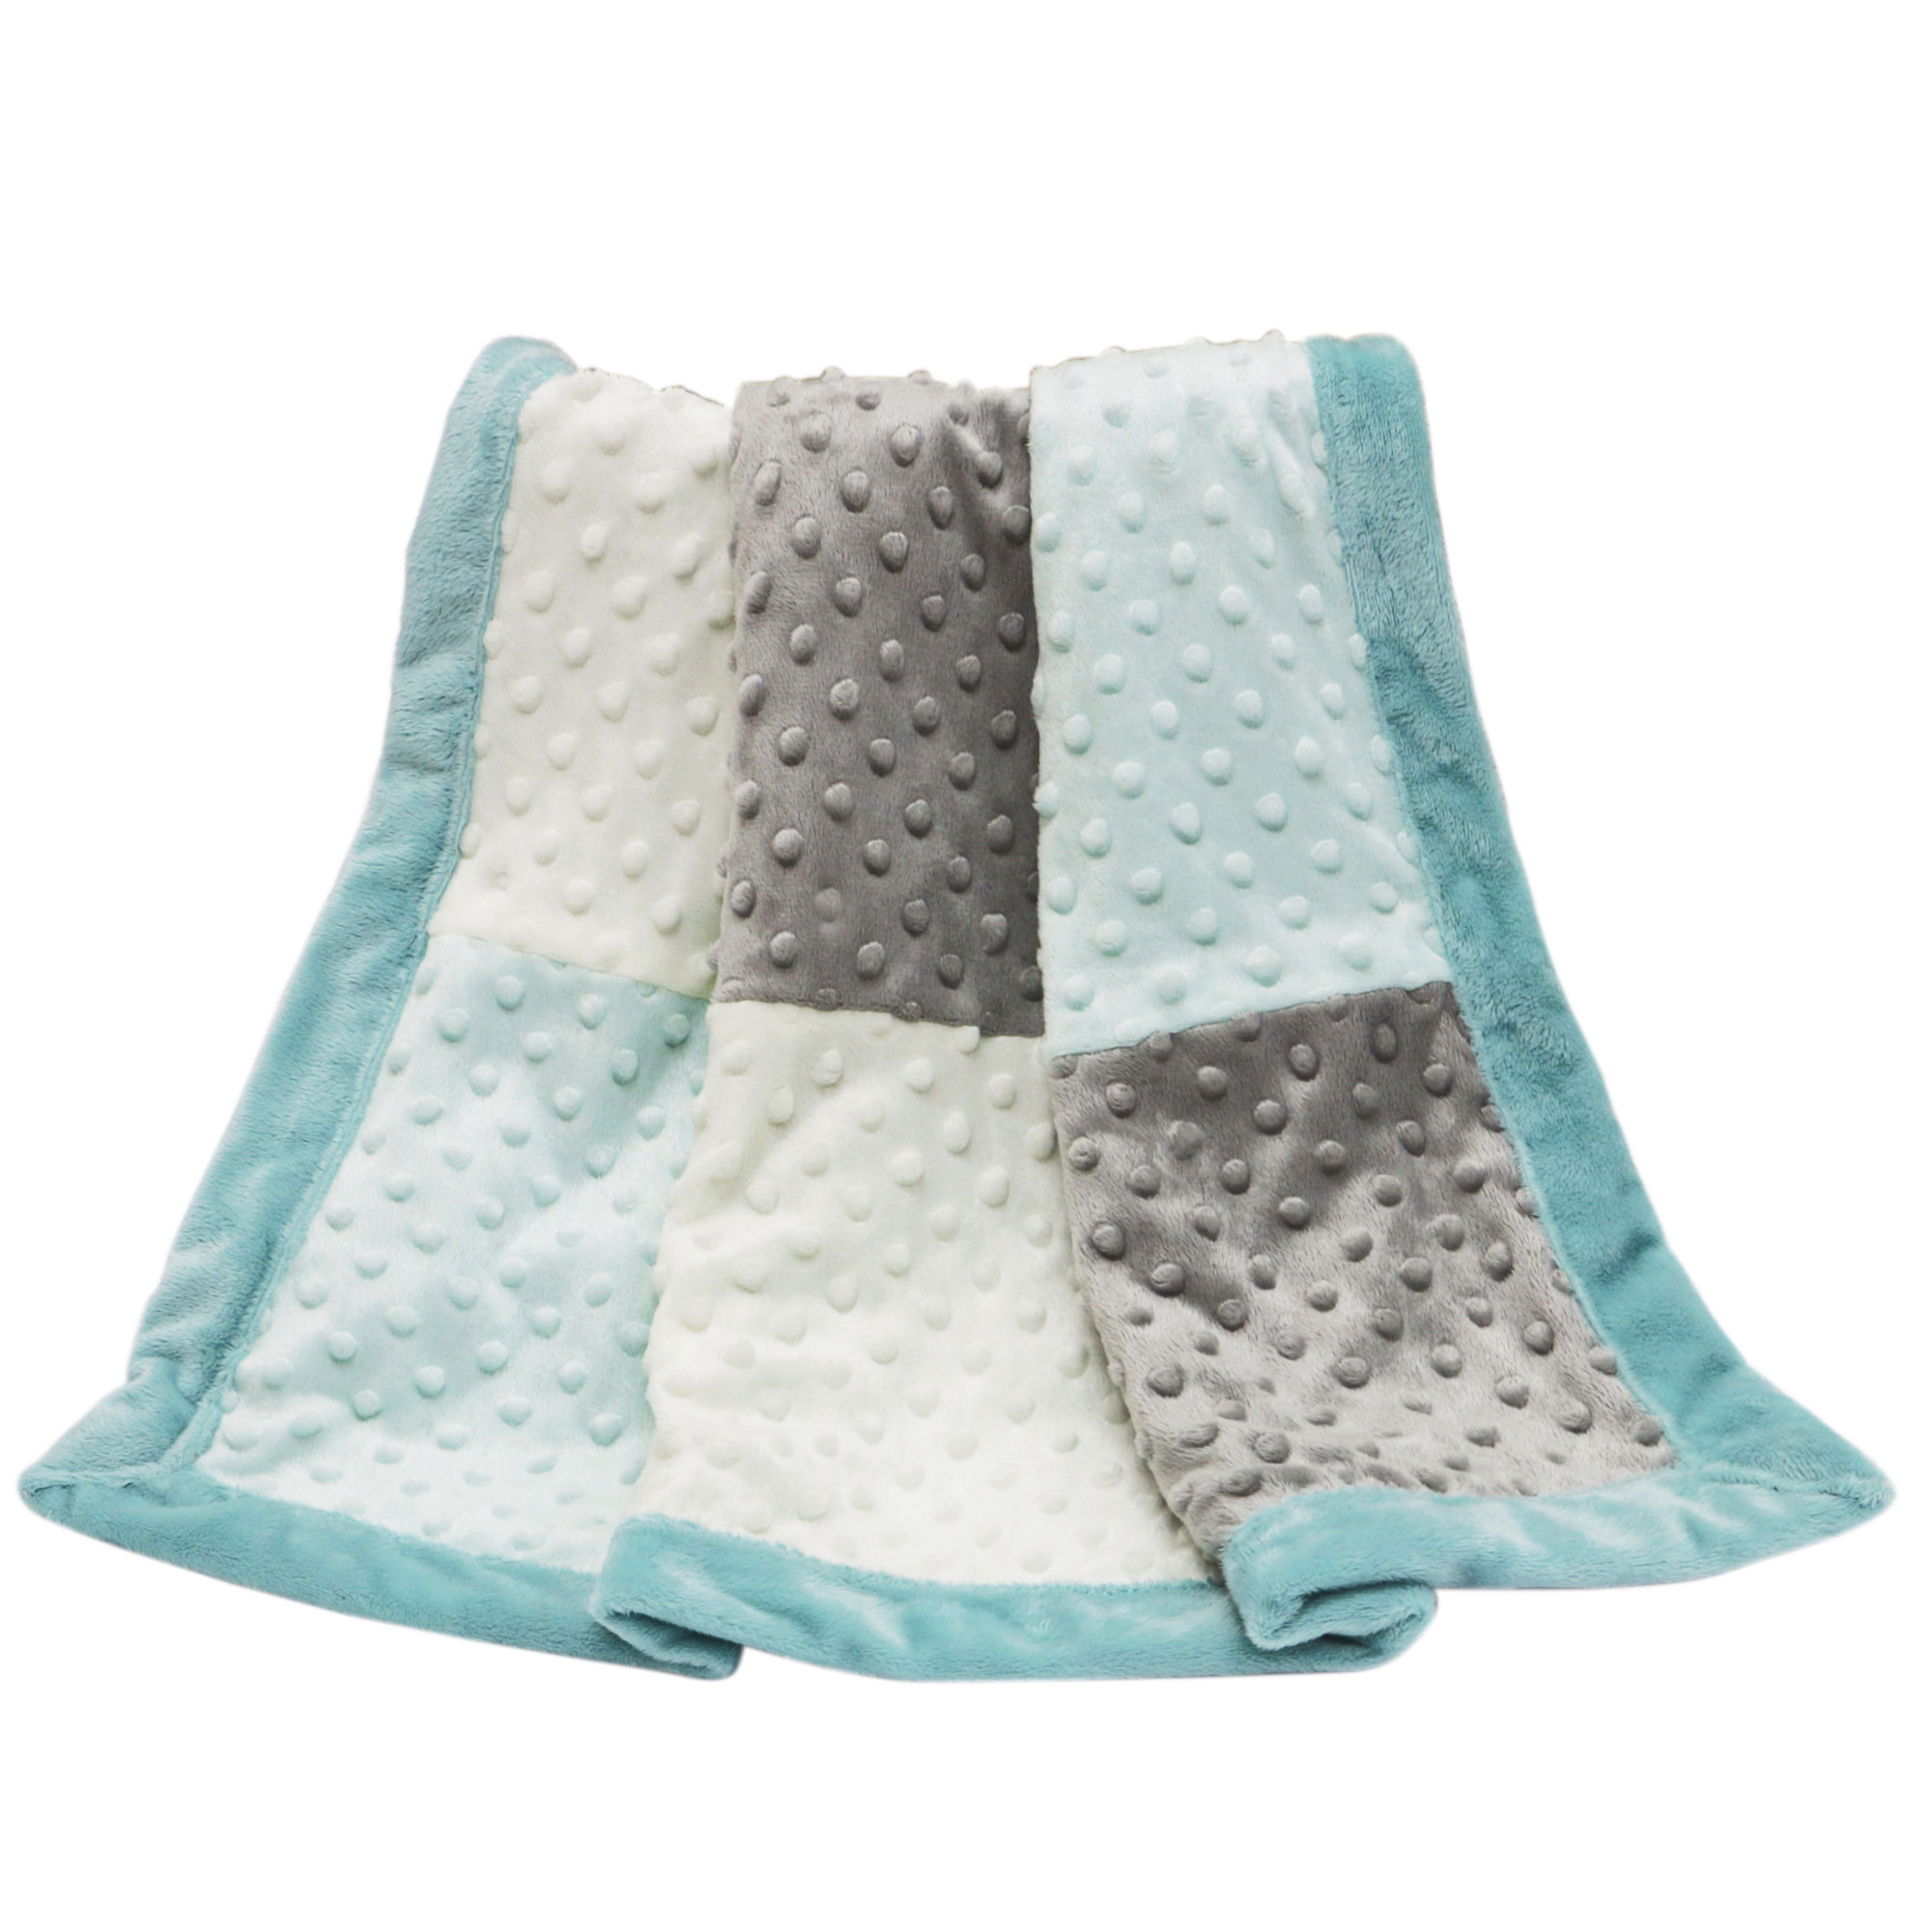 The Peanut Shell Baby Blanket - Grey and Mint Zig Zag - Uptown Giraffe Patchwork Blanket